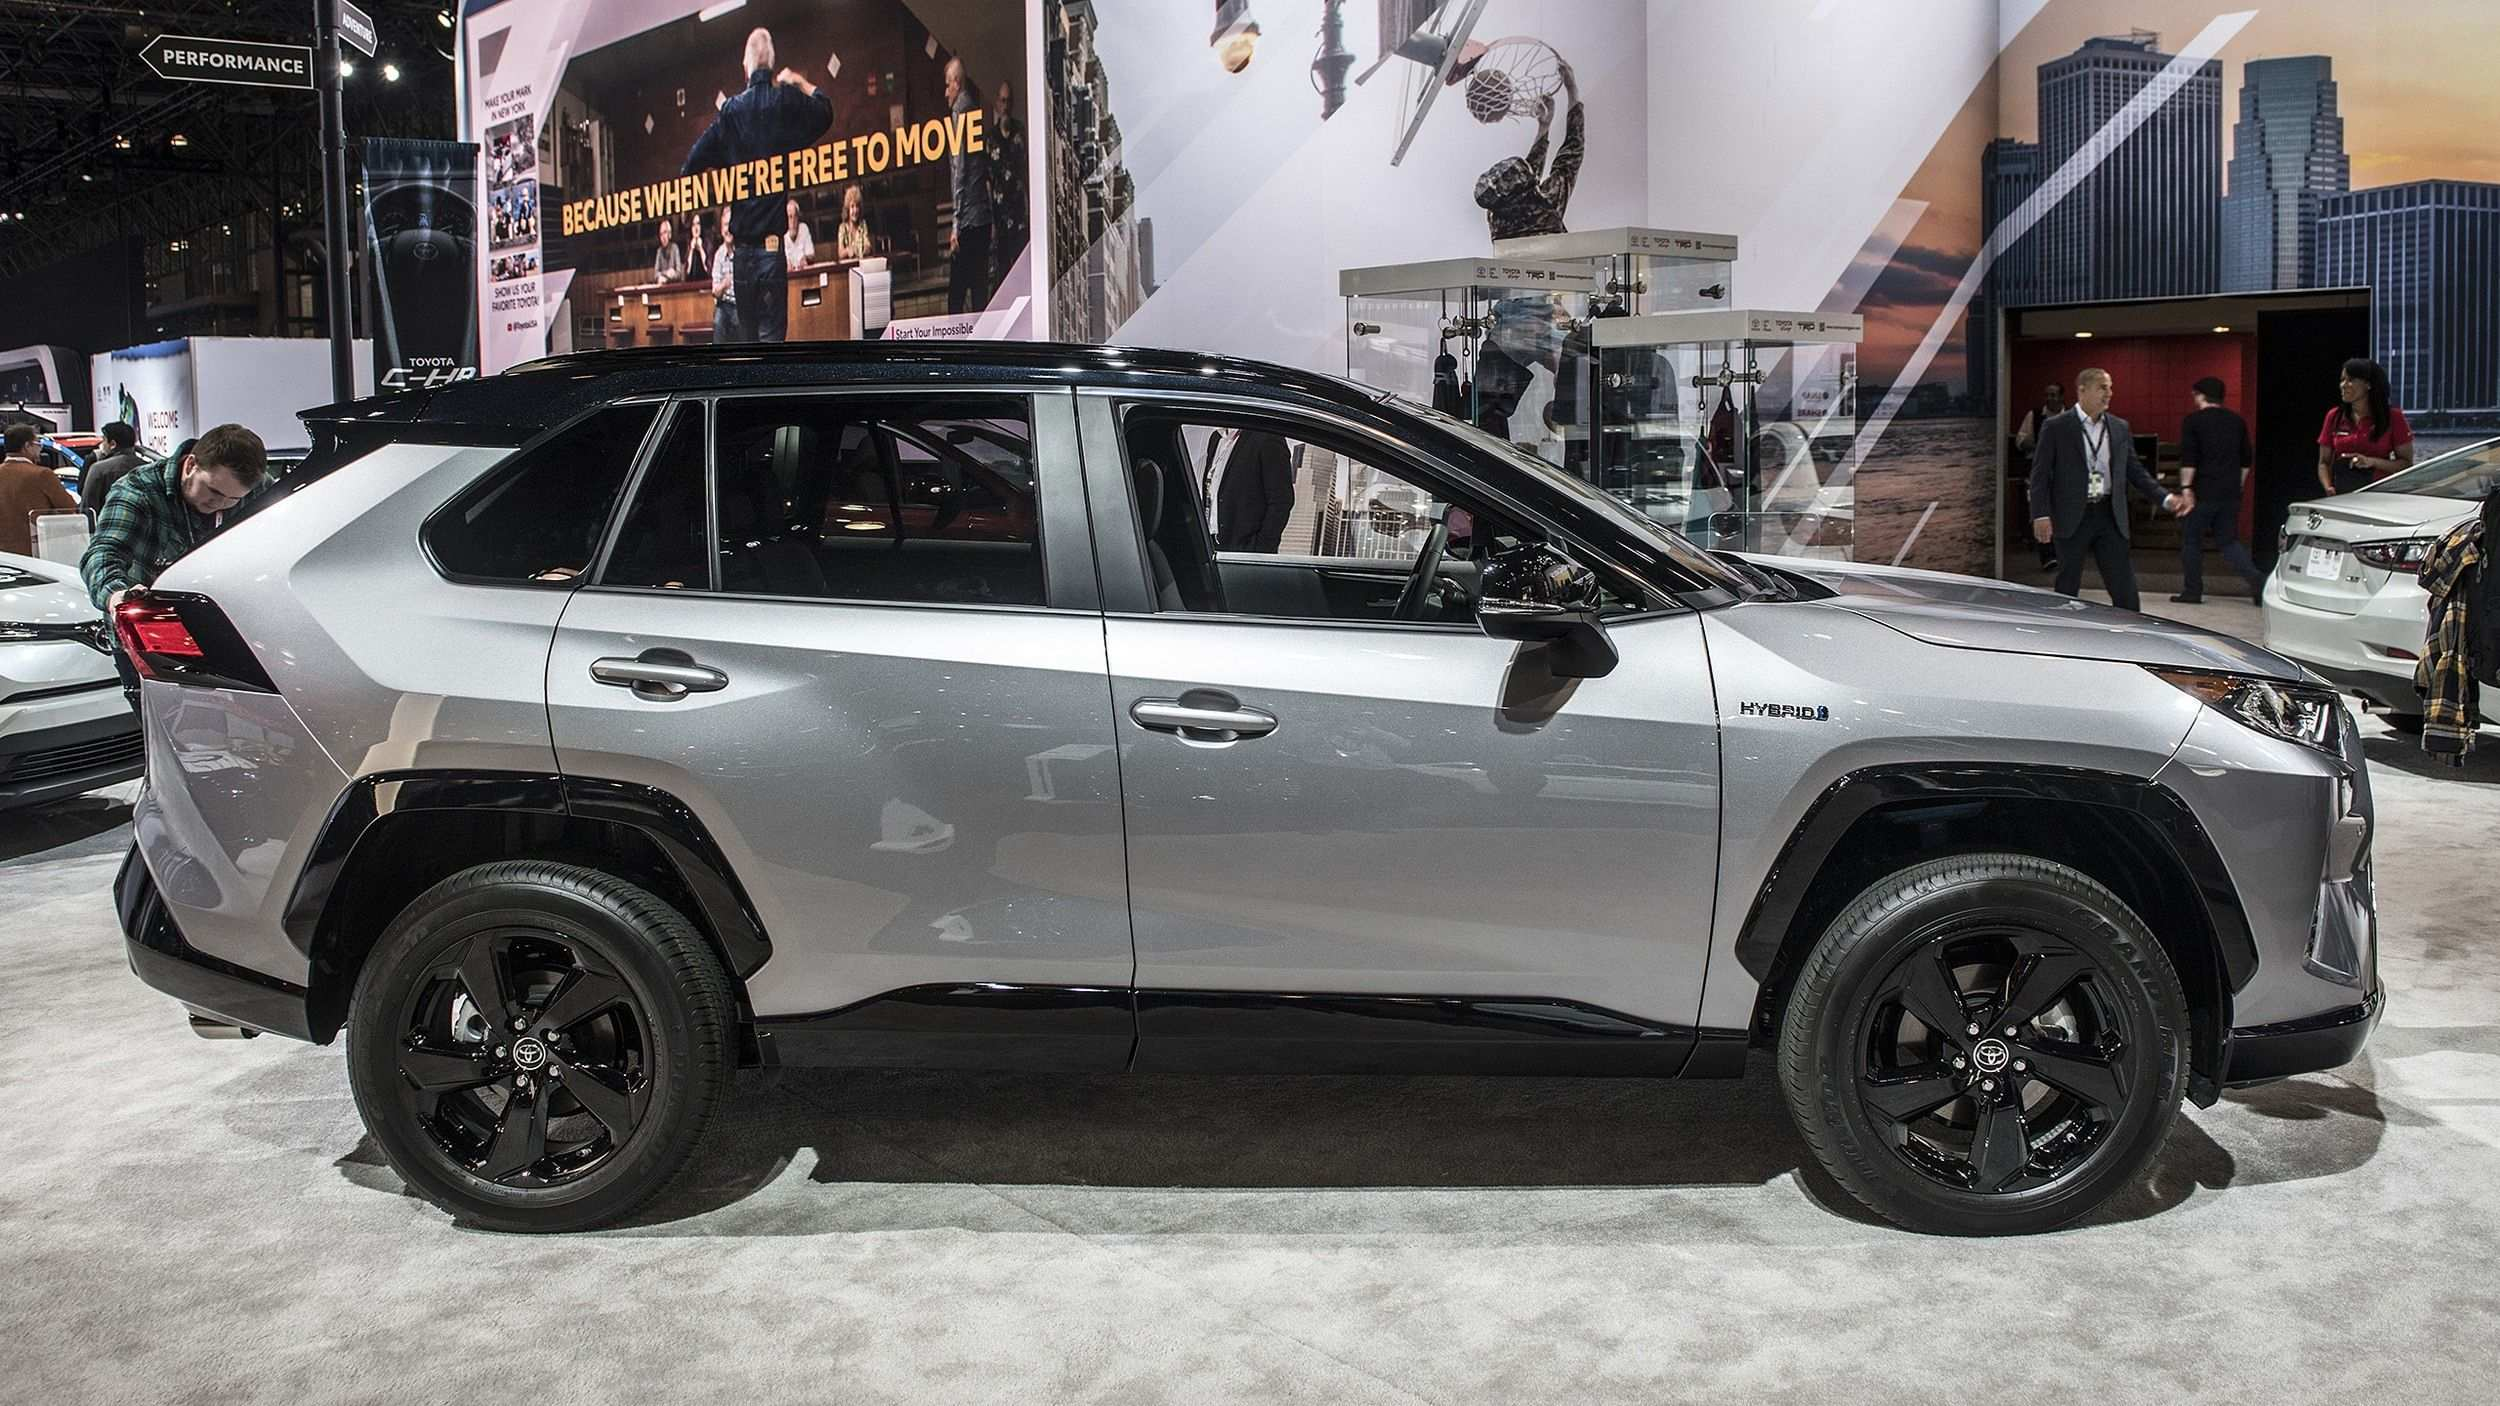 13 All New 2019 Toyota Rav4 Hybrid Specs Engine by 2019 Toyota Rav4 Hybrid Specs